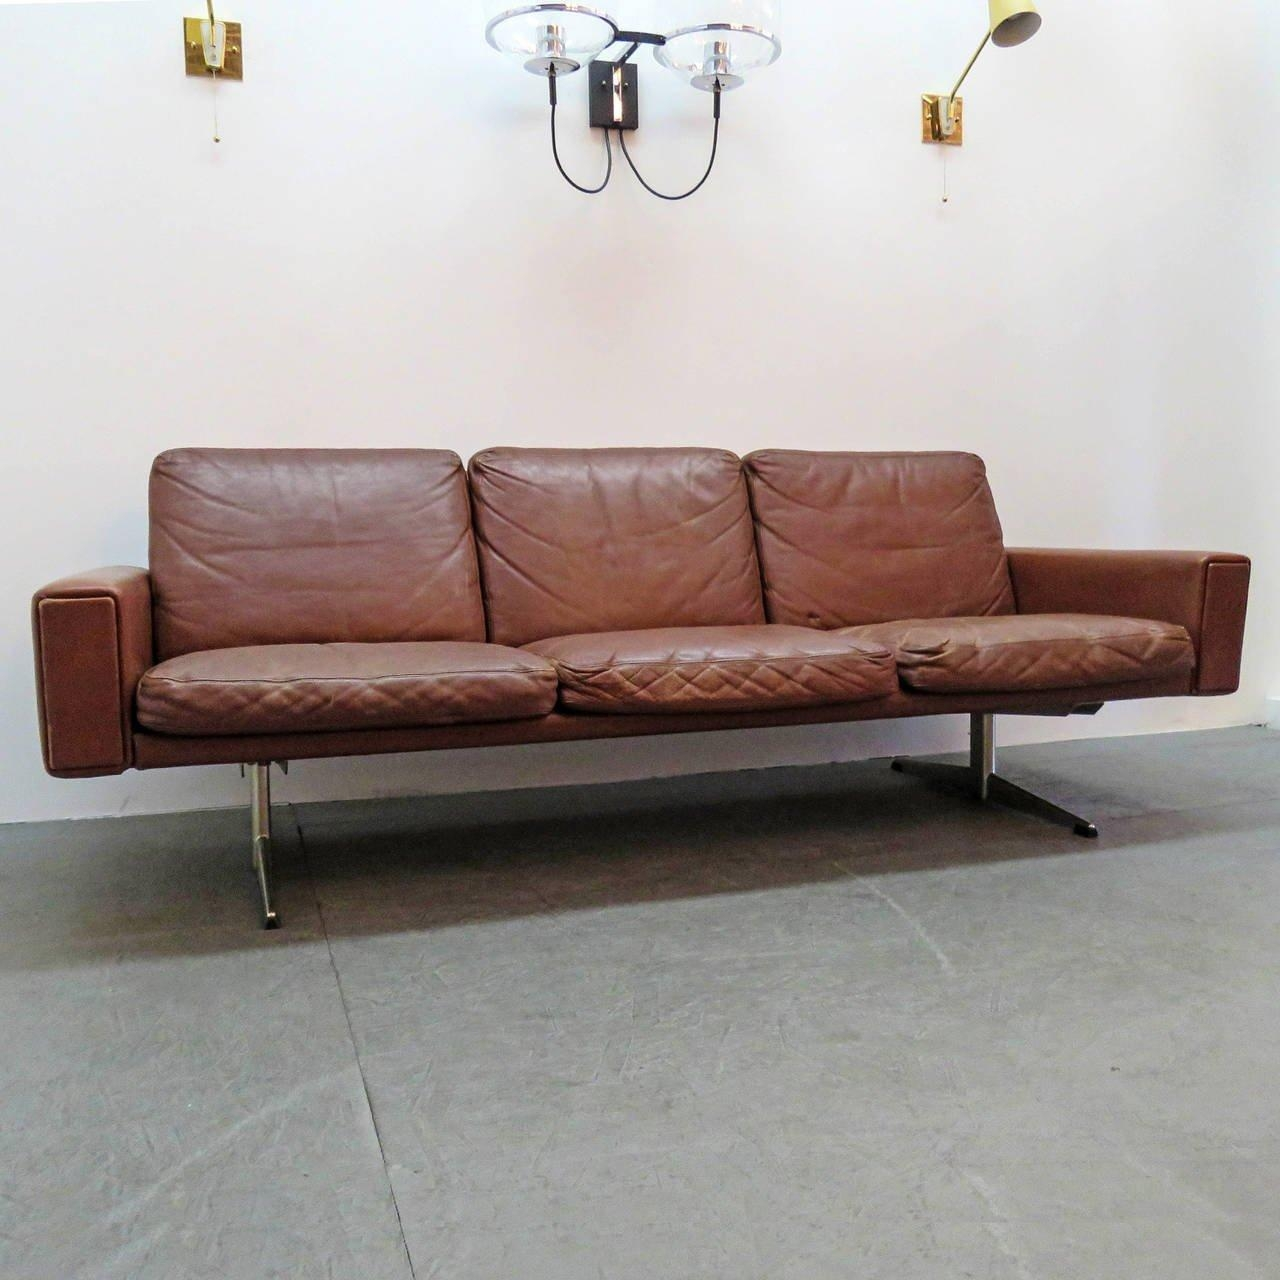 Danish Leather Sofa, 1960 For Sale At 1Stdibs Within Danish Leather Sofas (Image 10 of 20)